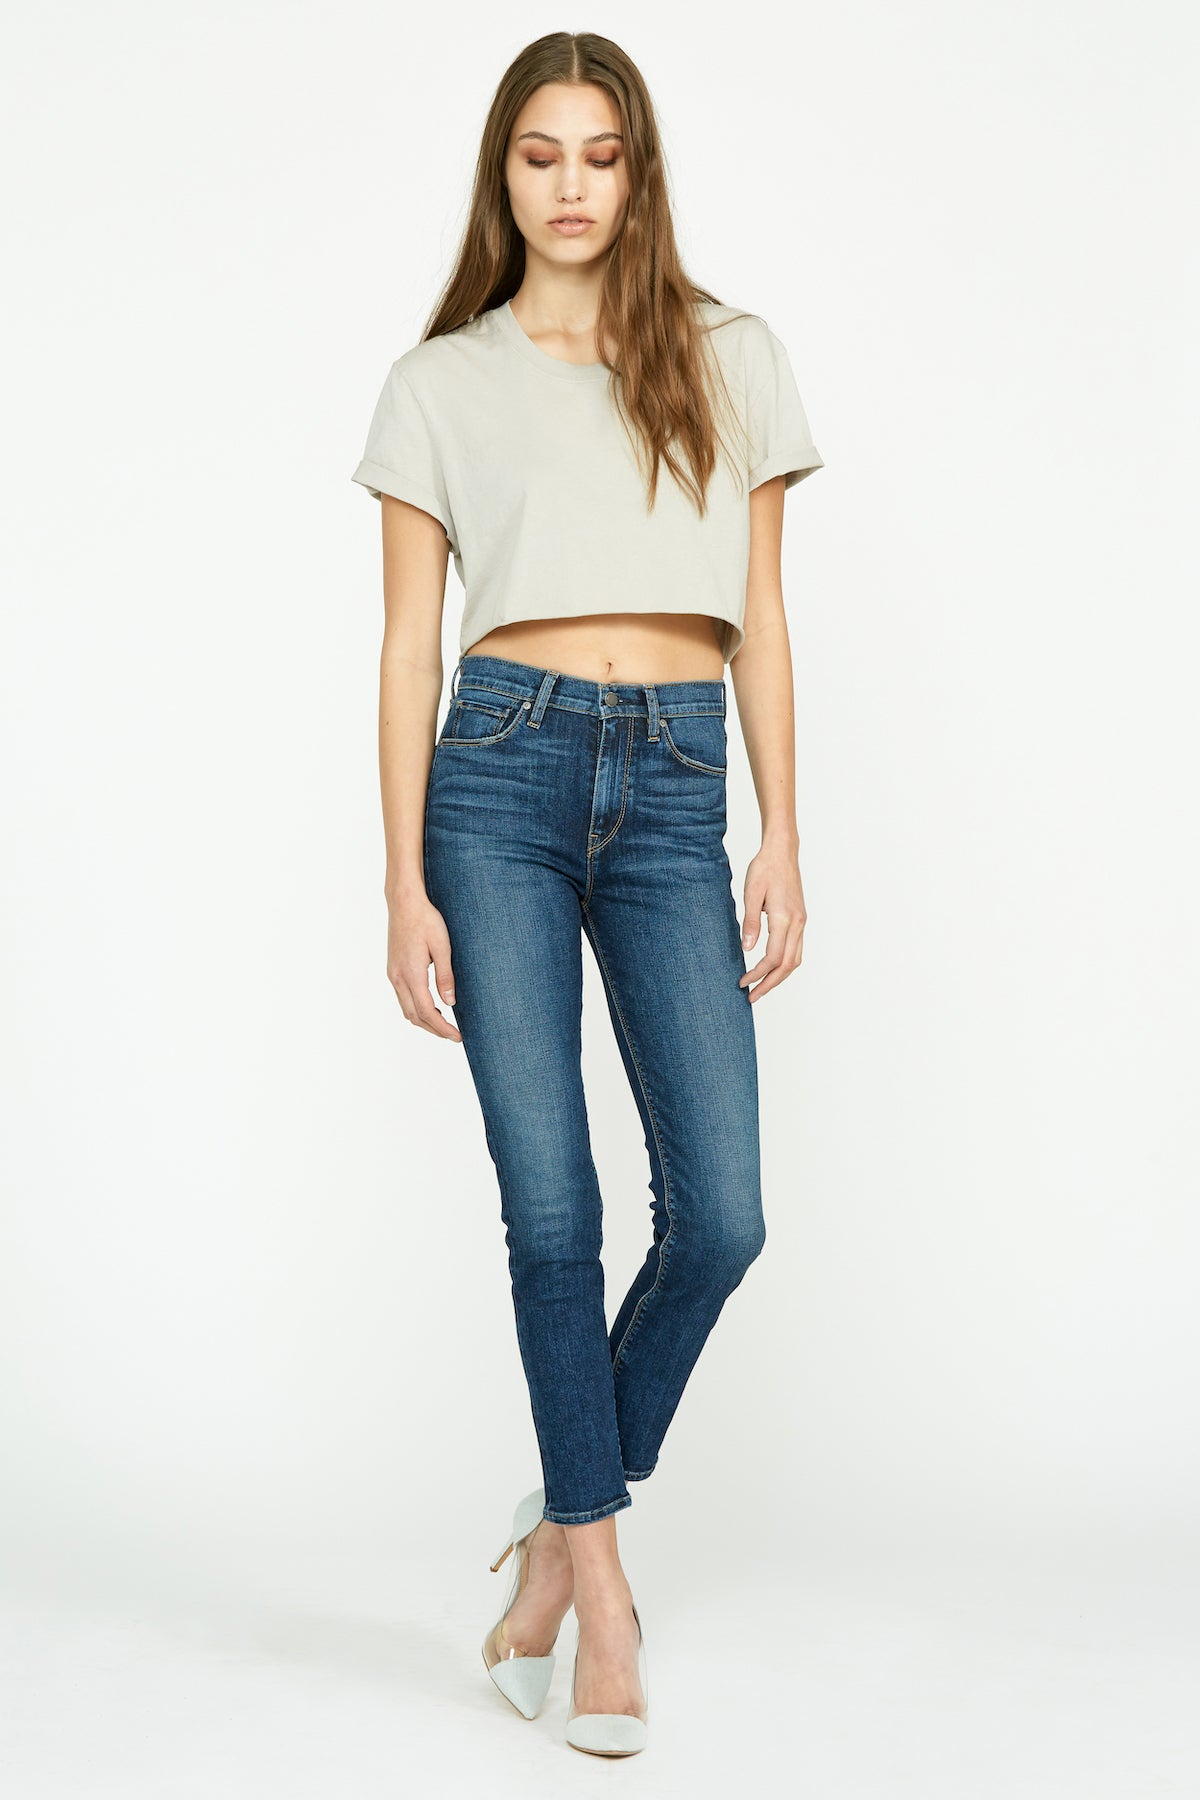 Holly_High-Rise_Skinny_Jean